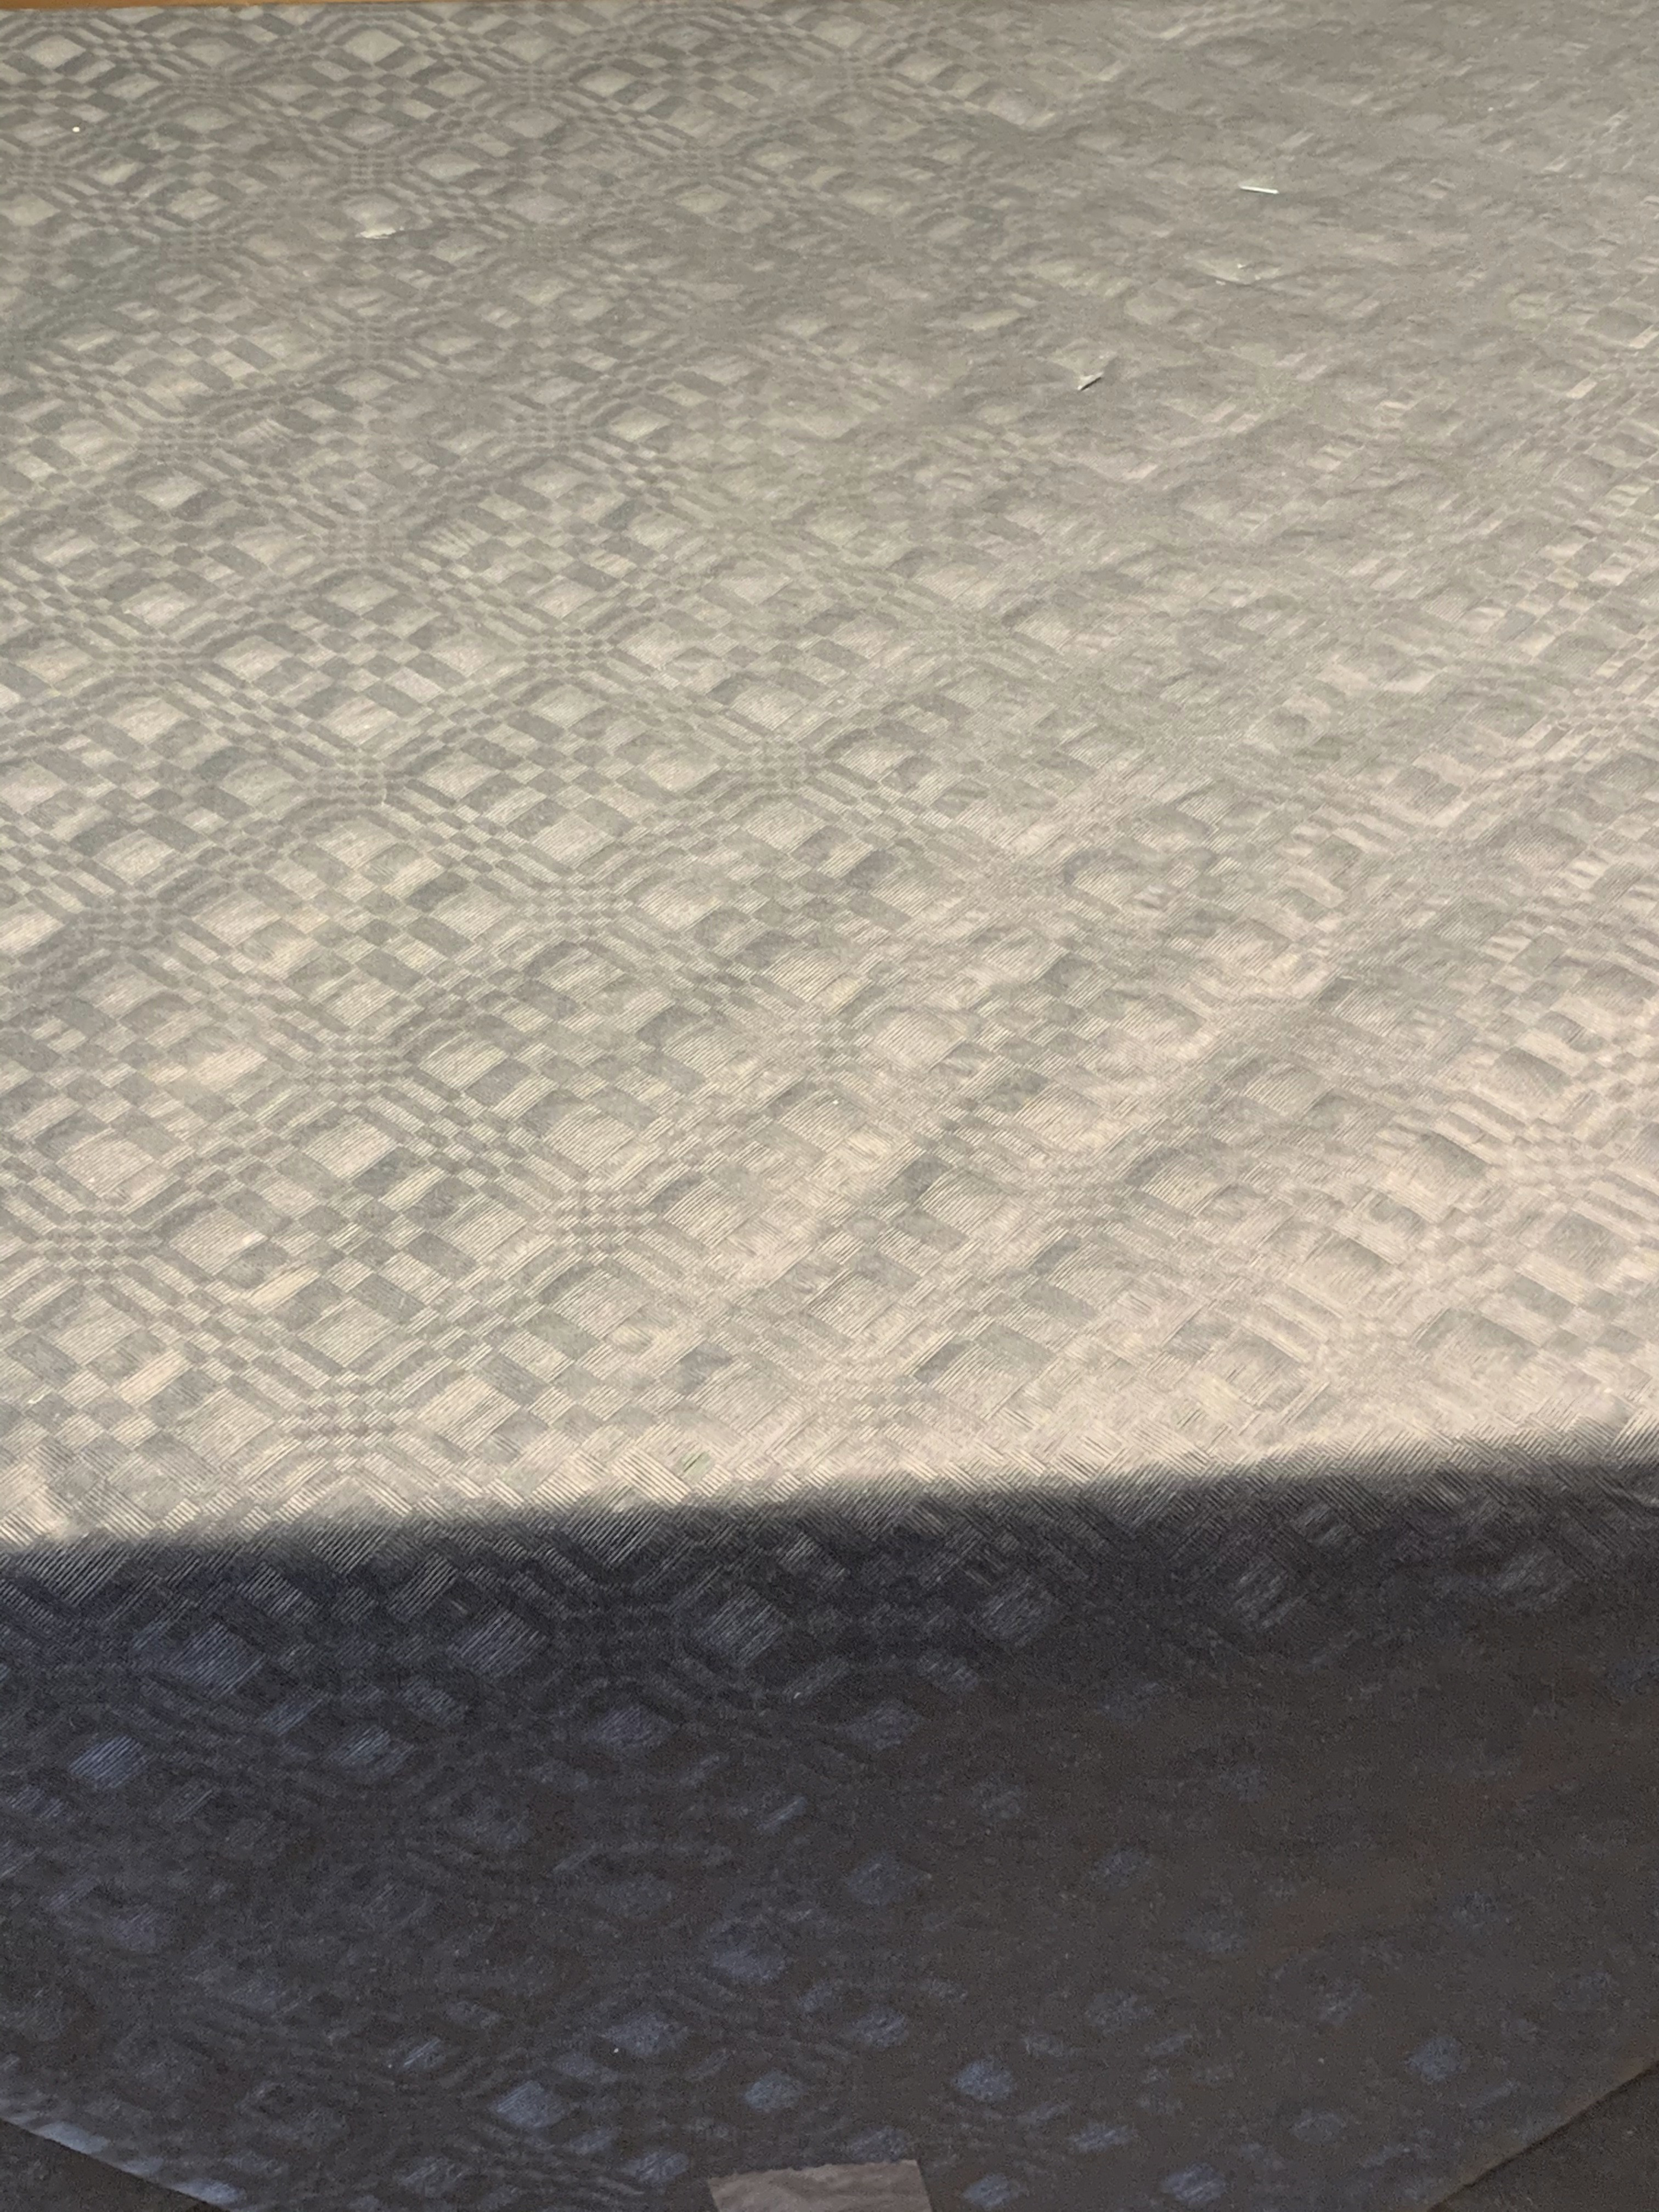 Sort papirsdug - damask - 25 meter